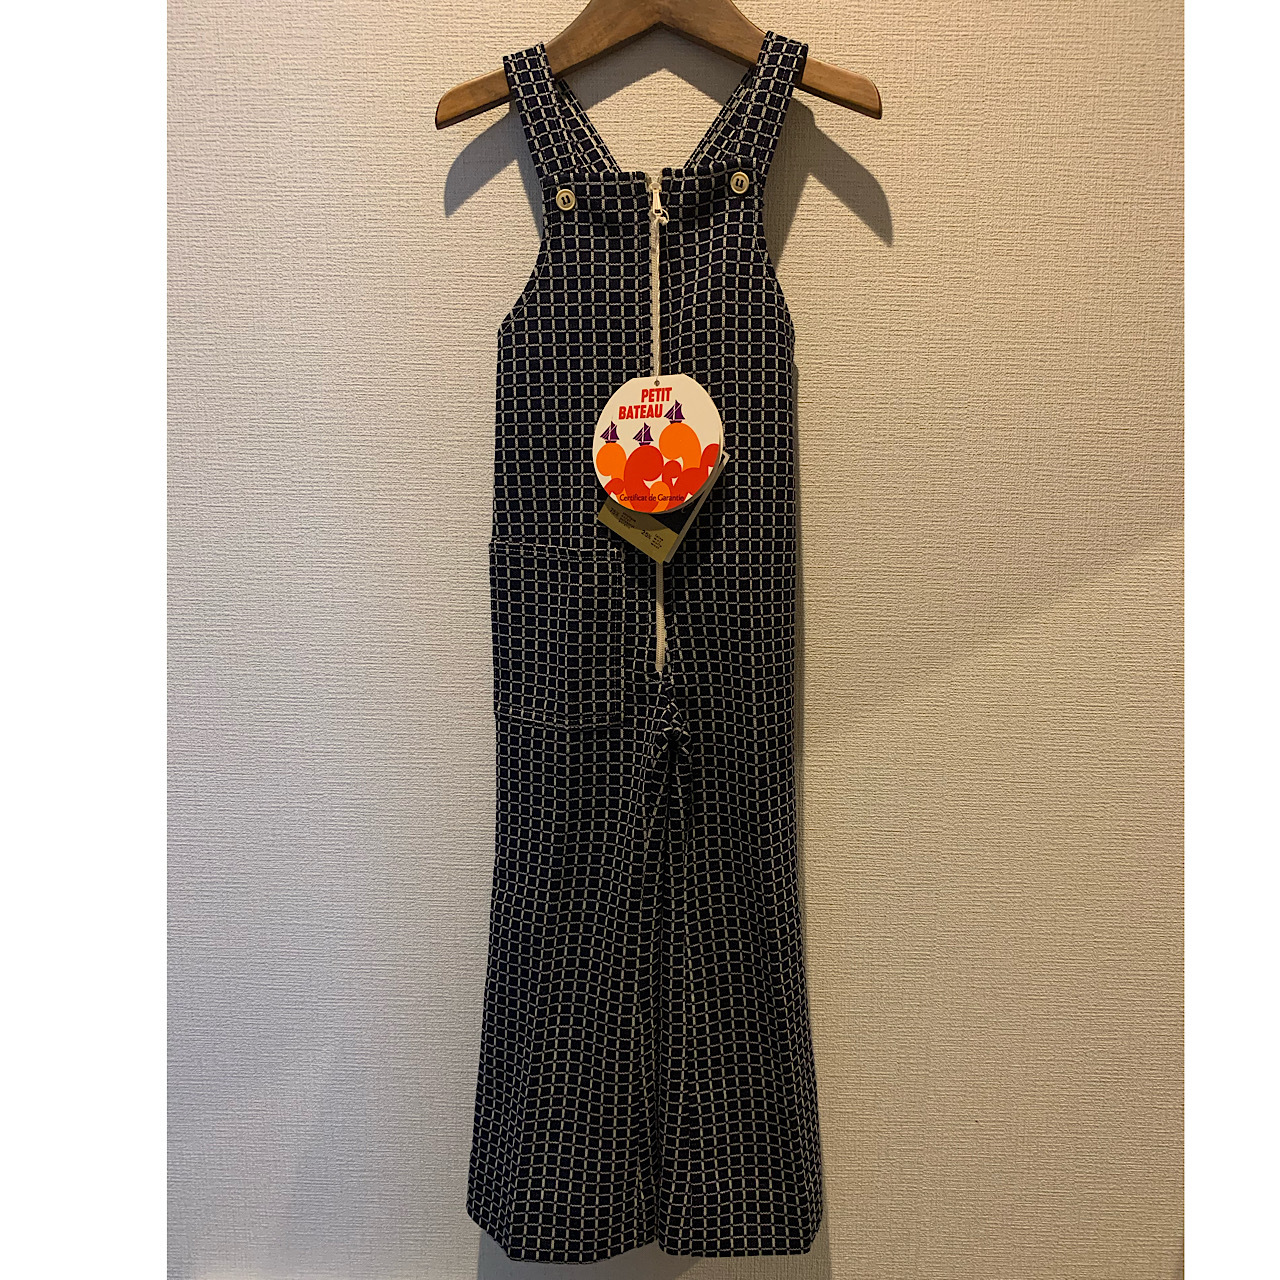 【KIDS】70's〈Petit Bateau〉Checkered Jersey Jumpsuit - French - Size 4 years